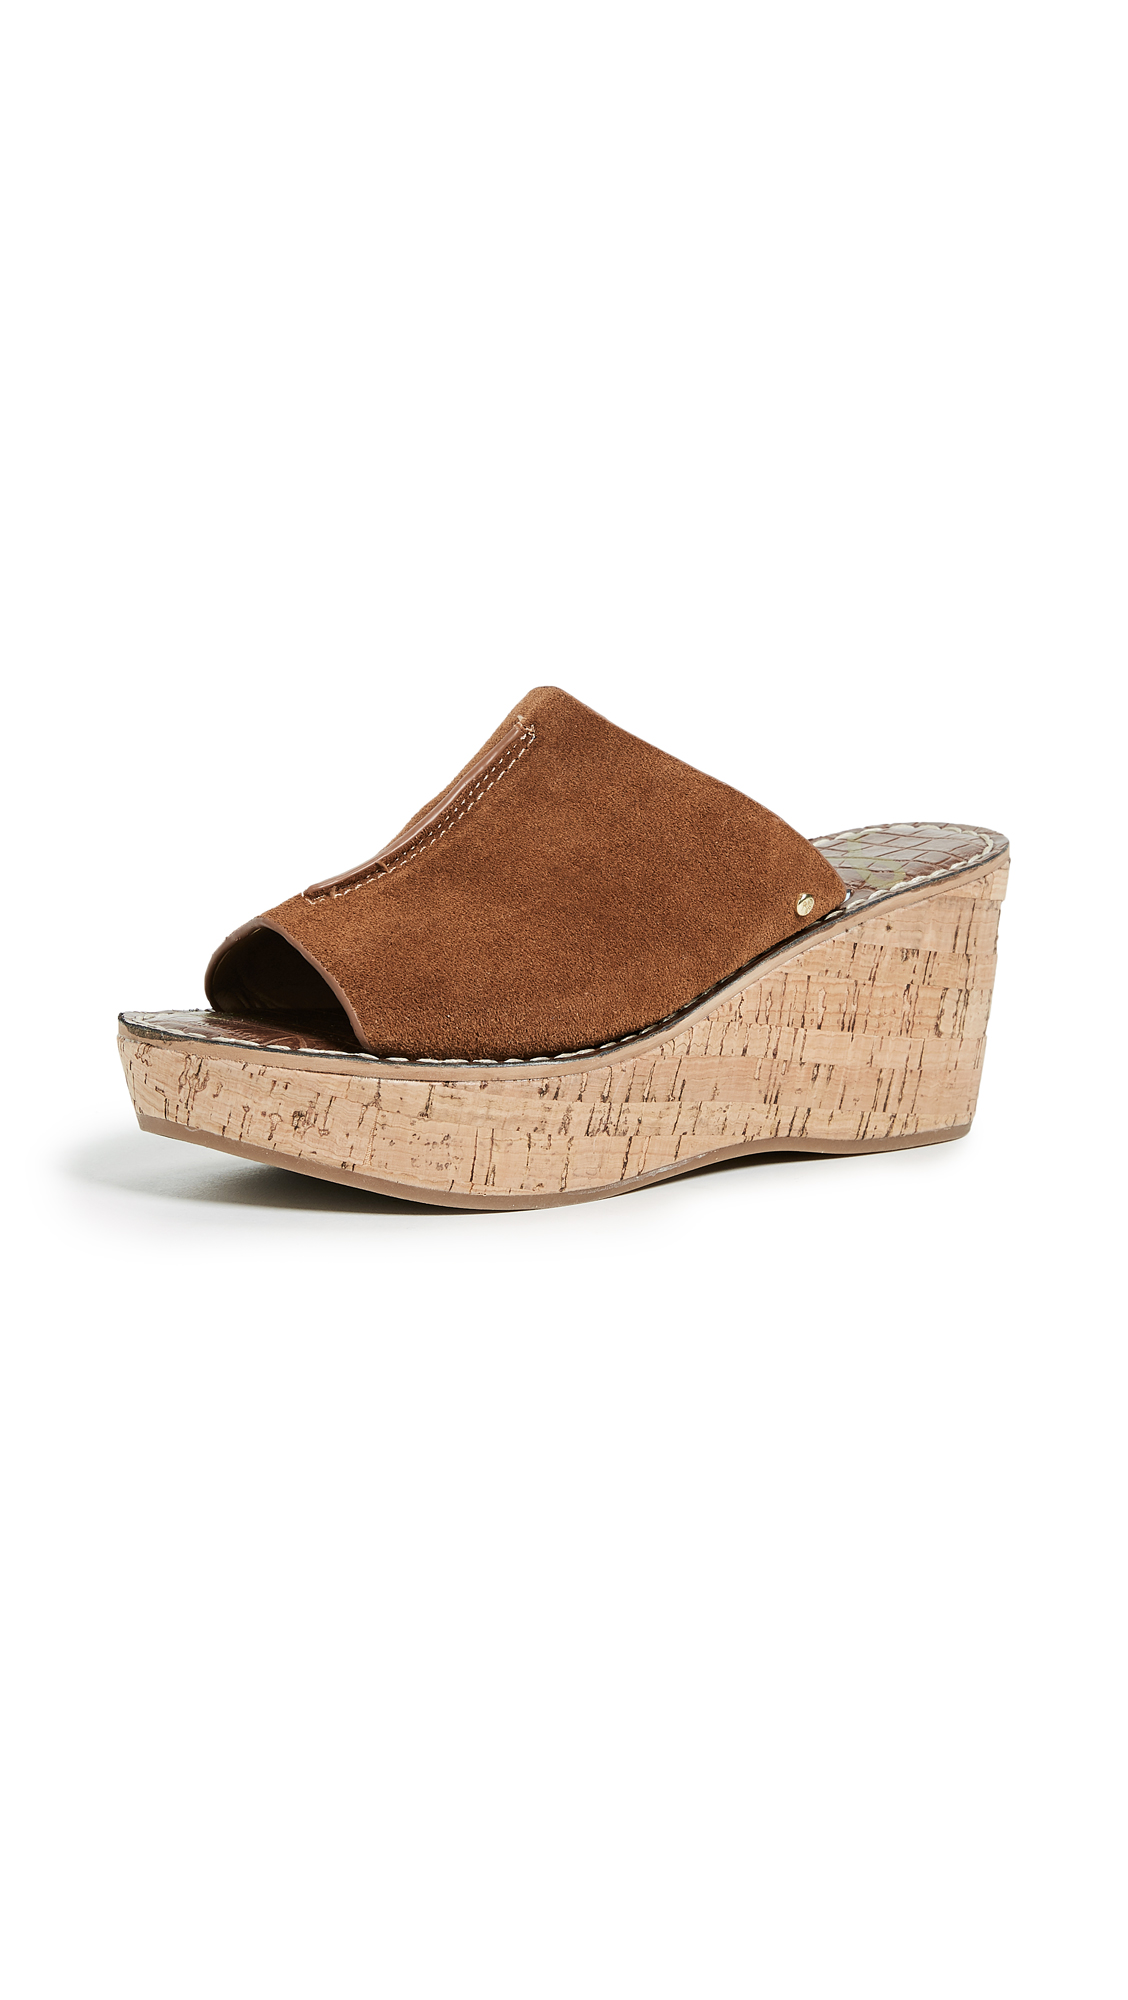 RANGER CORK WEDGE MULES